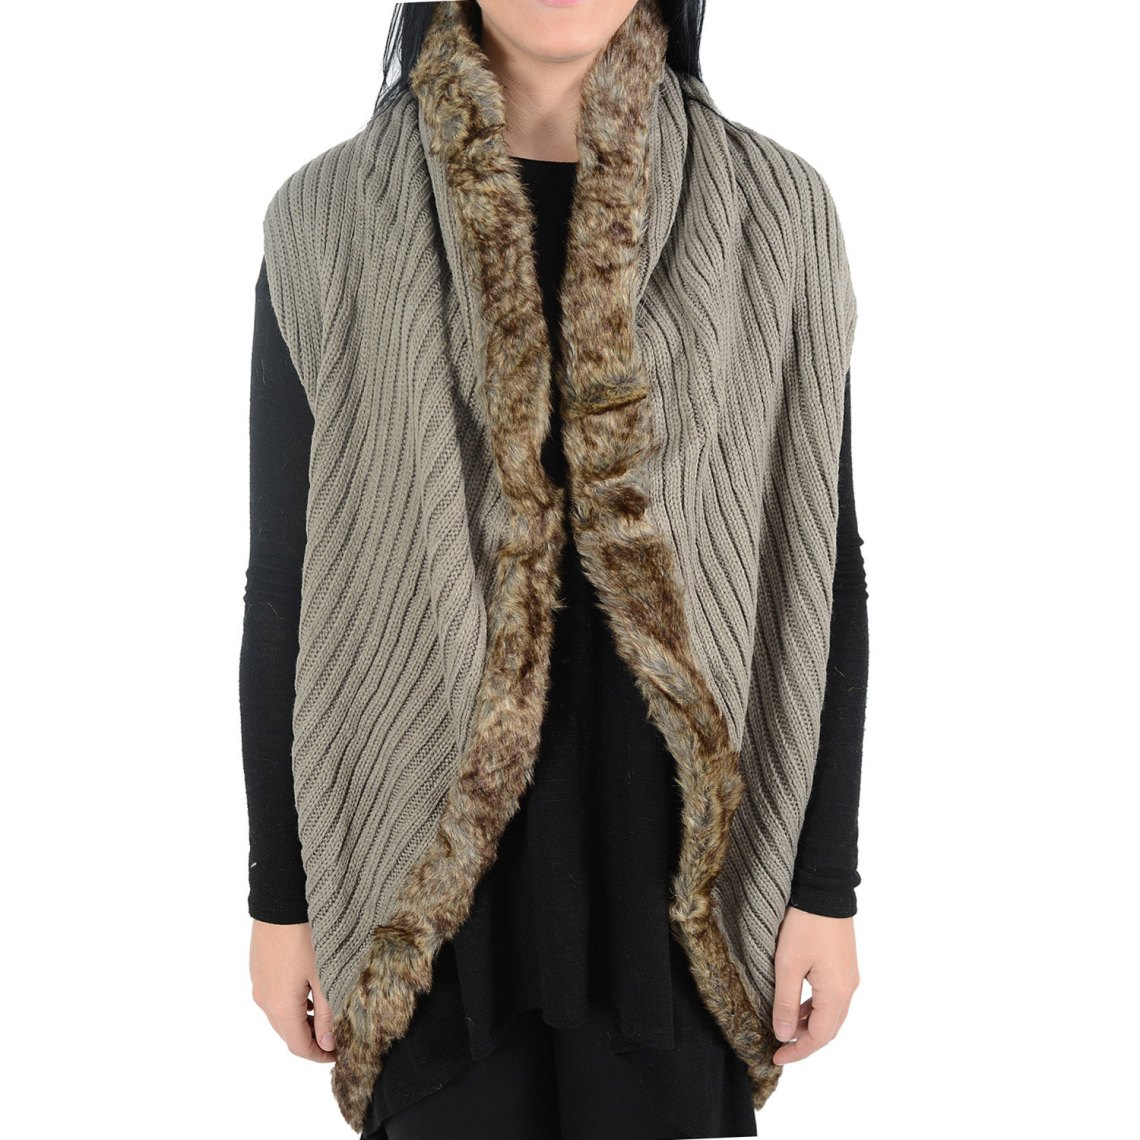 winter accessories - knitted vest